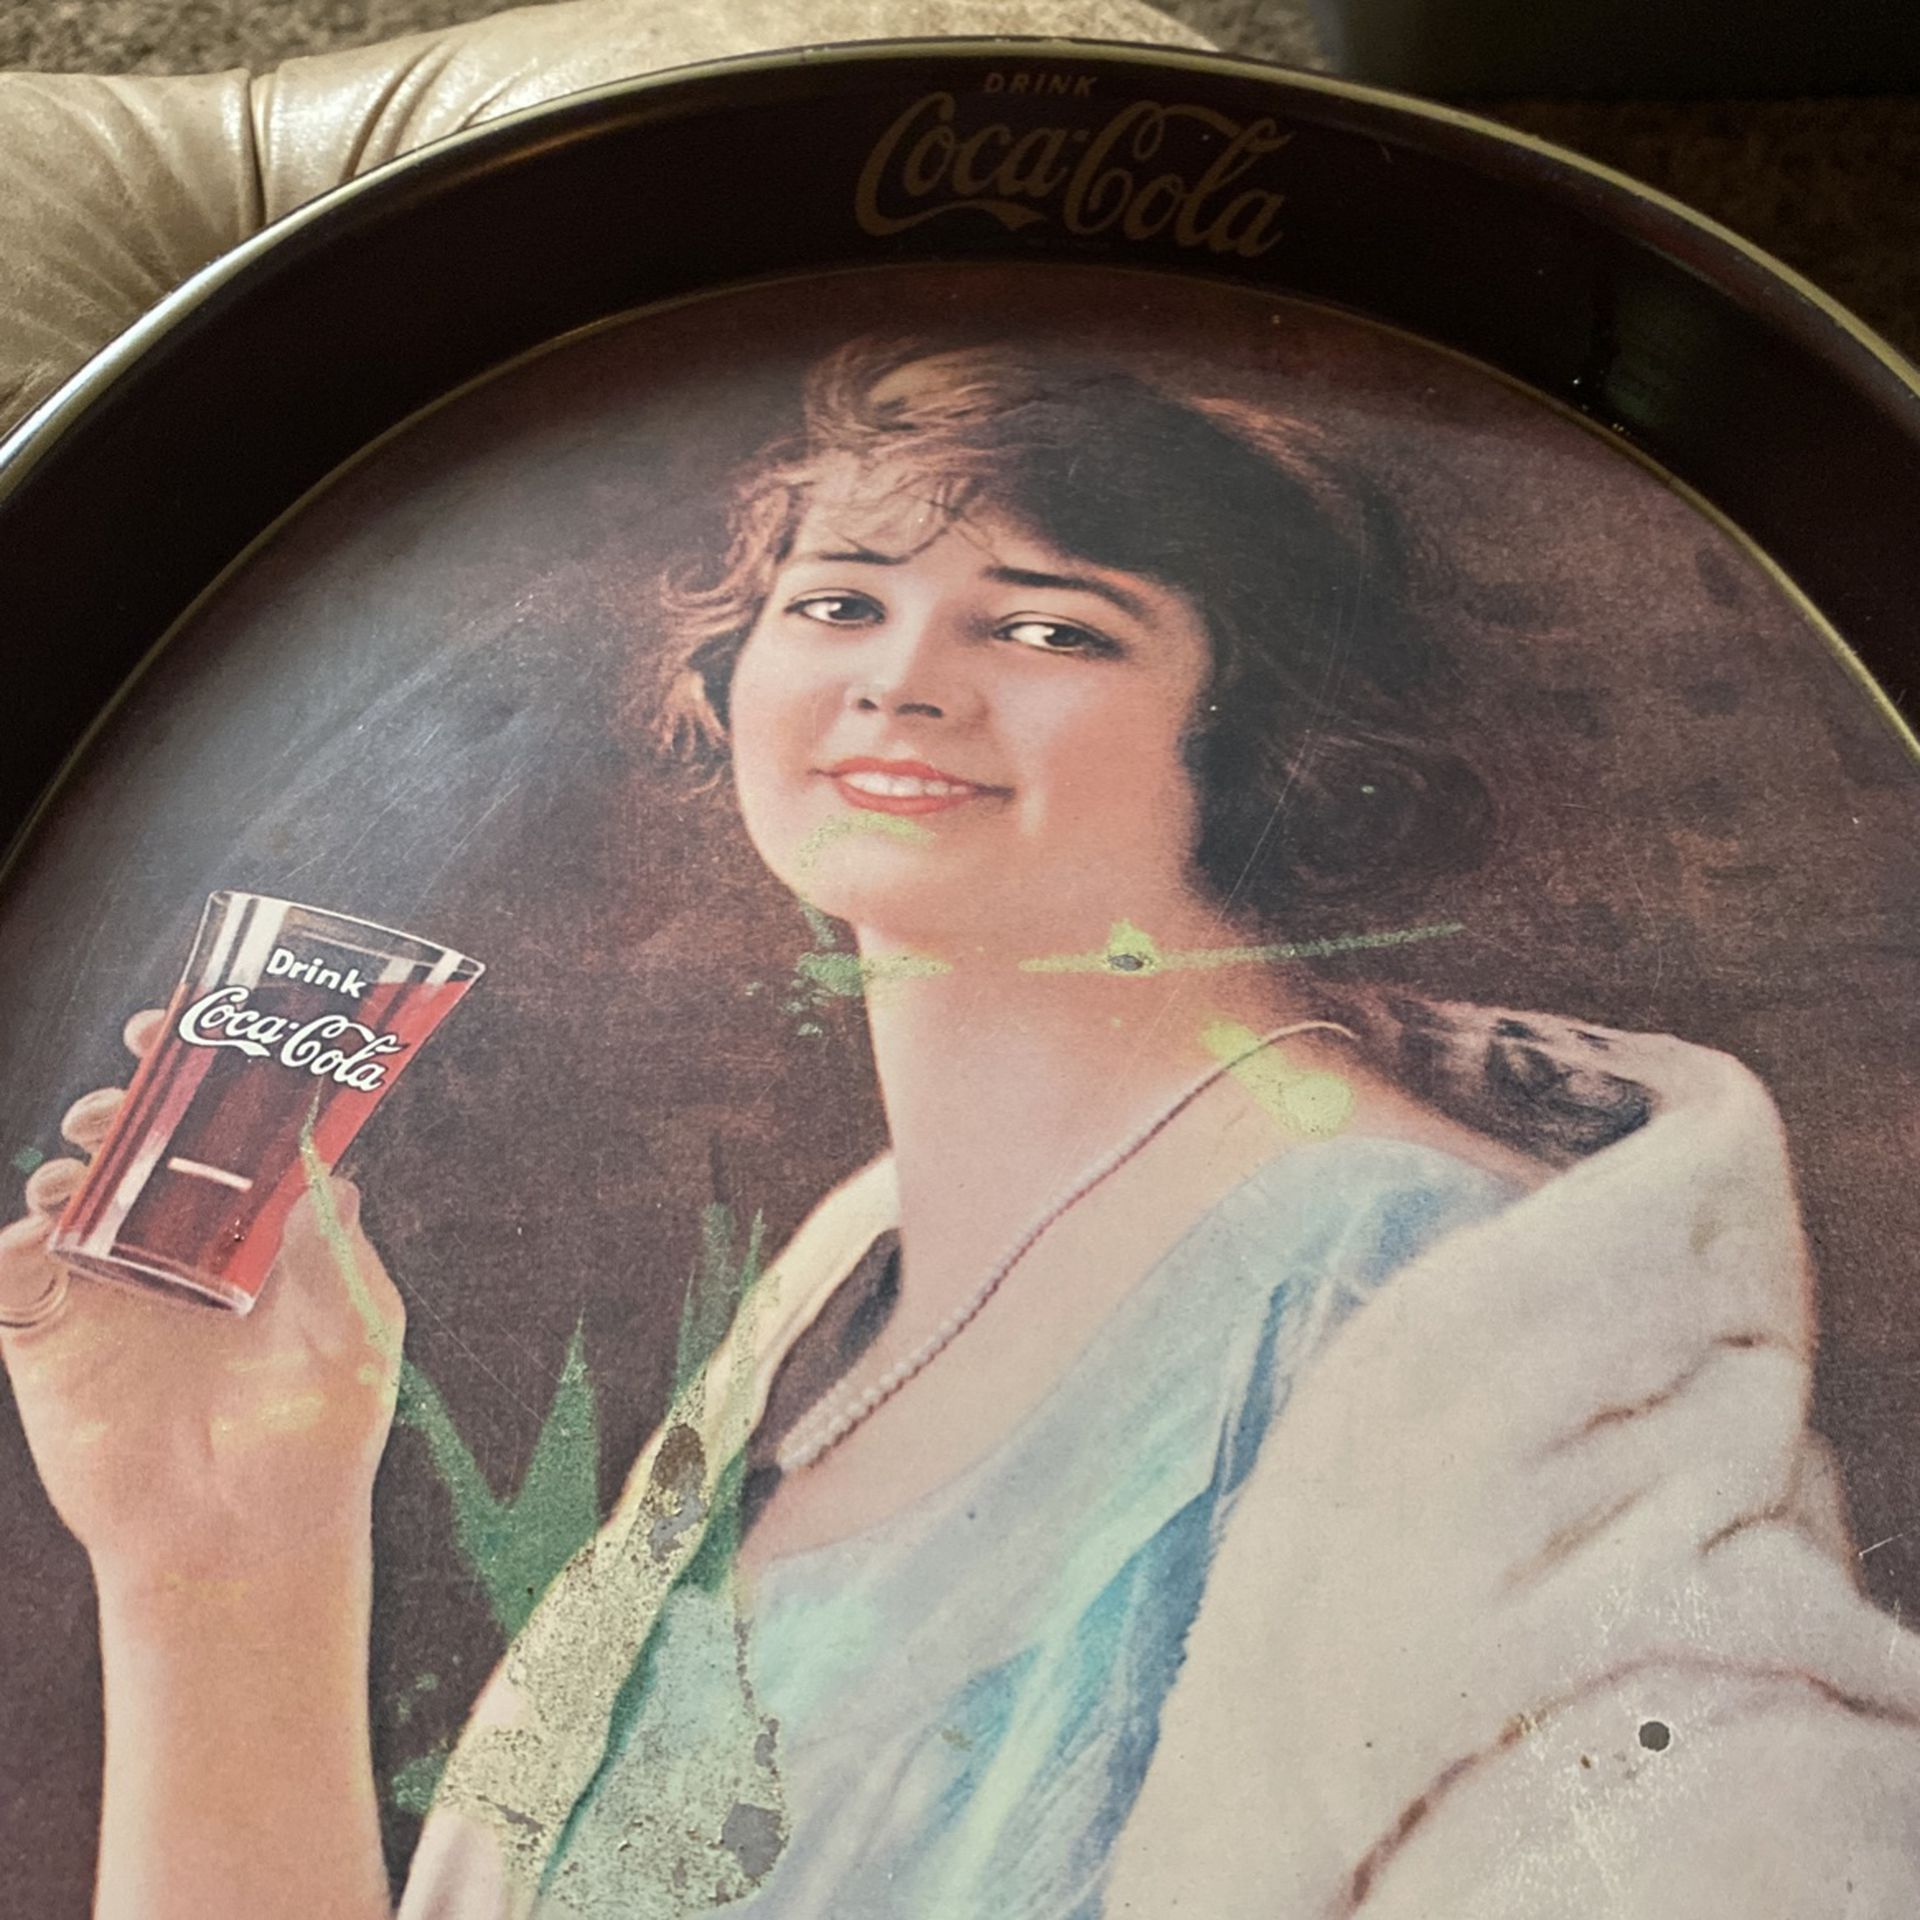 Coca-cola Drink Table Plate